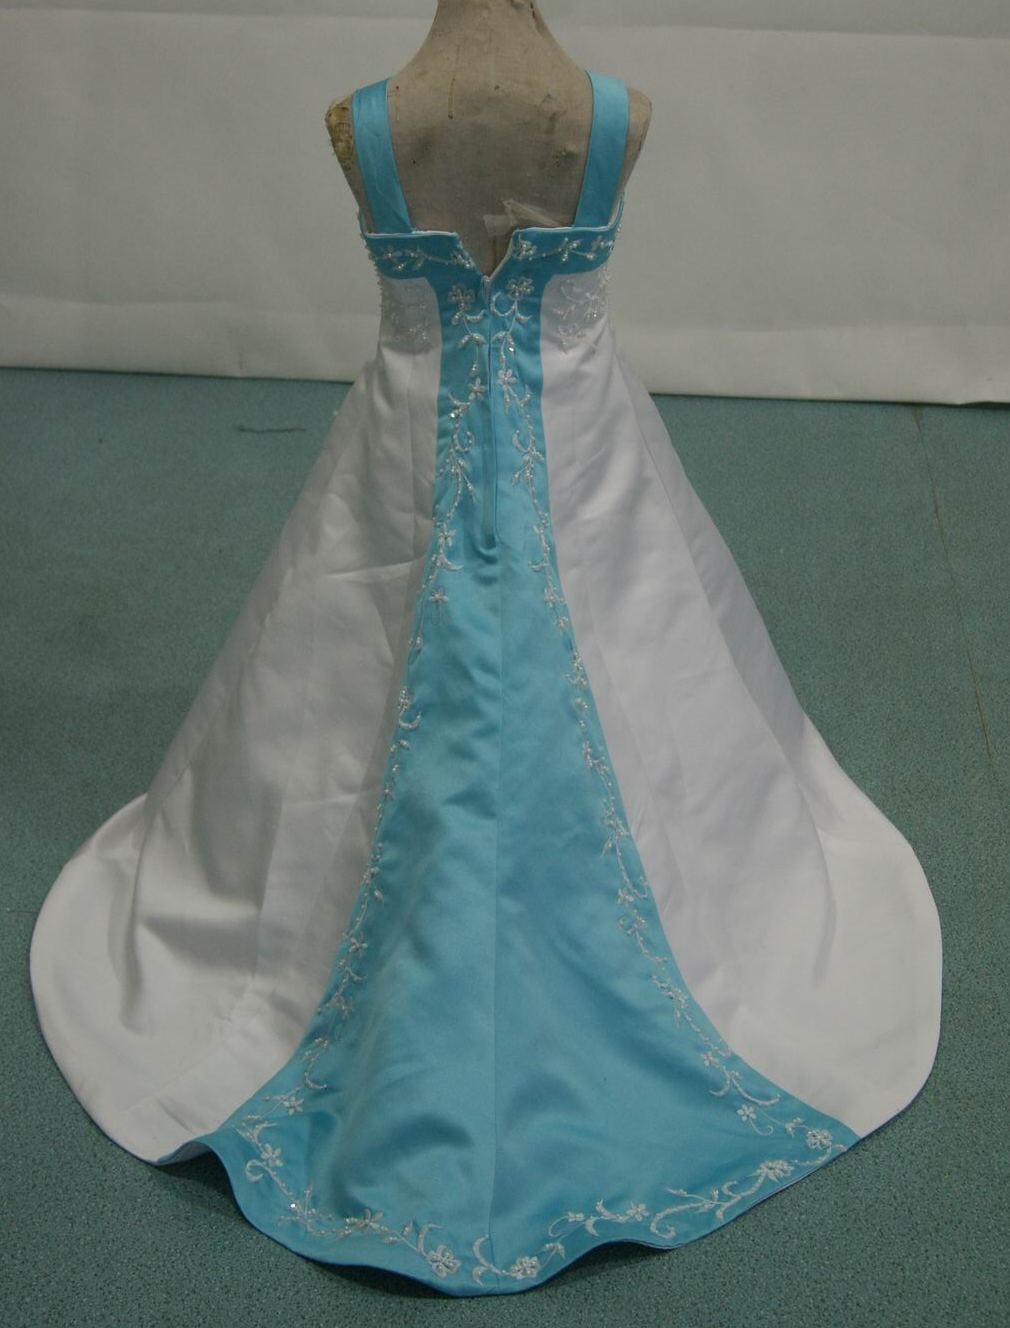 Trim Miniature Bridal Gown In White And Pool Blue